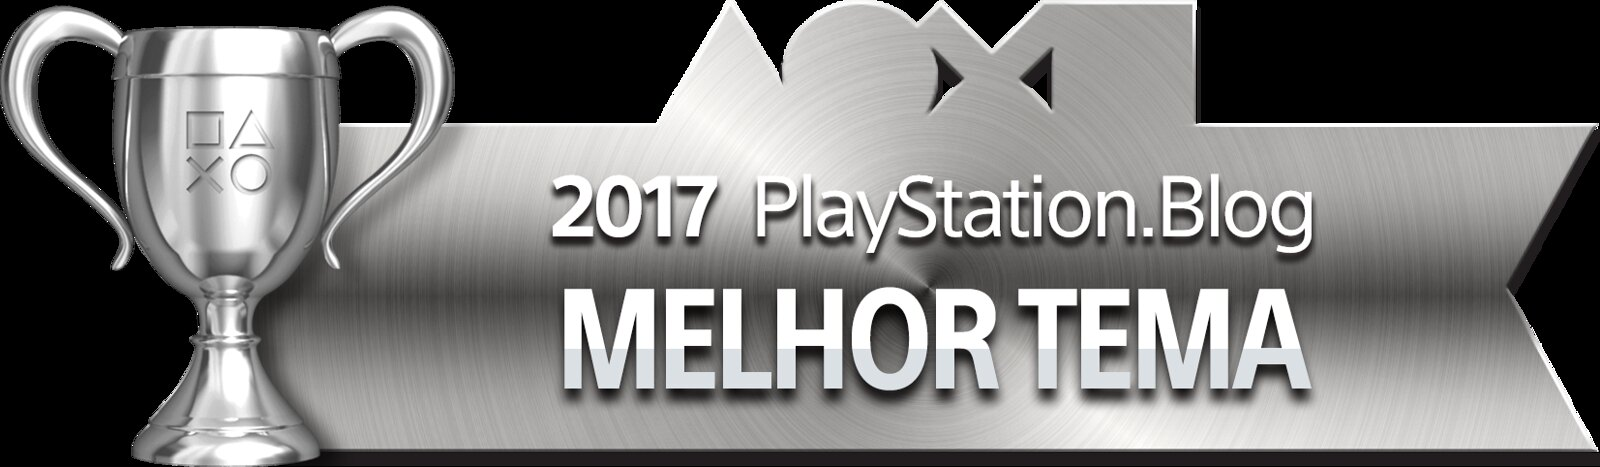 PlayStation Blog Game of the Year 2017 - Best PS4 Theme (Silver)